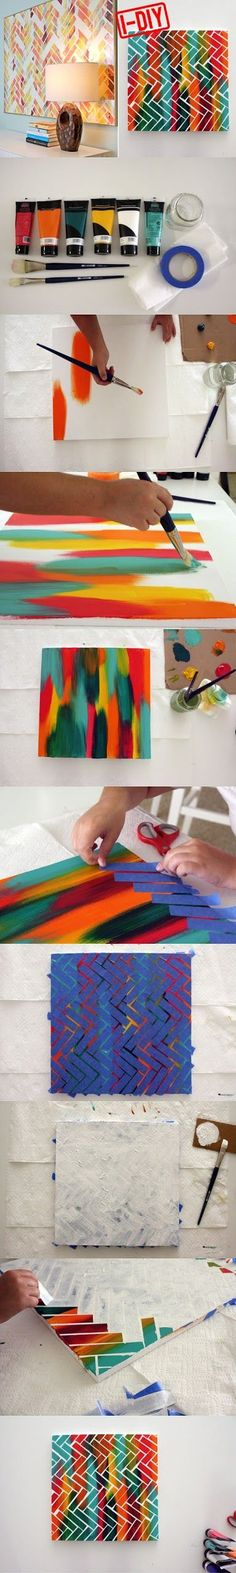 Easy artwork project DIY